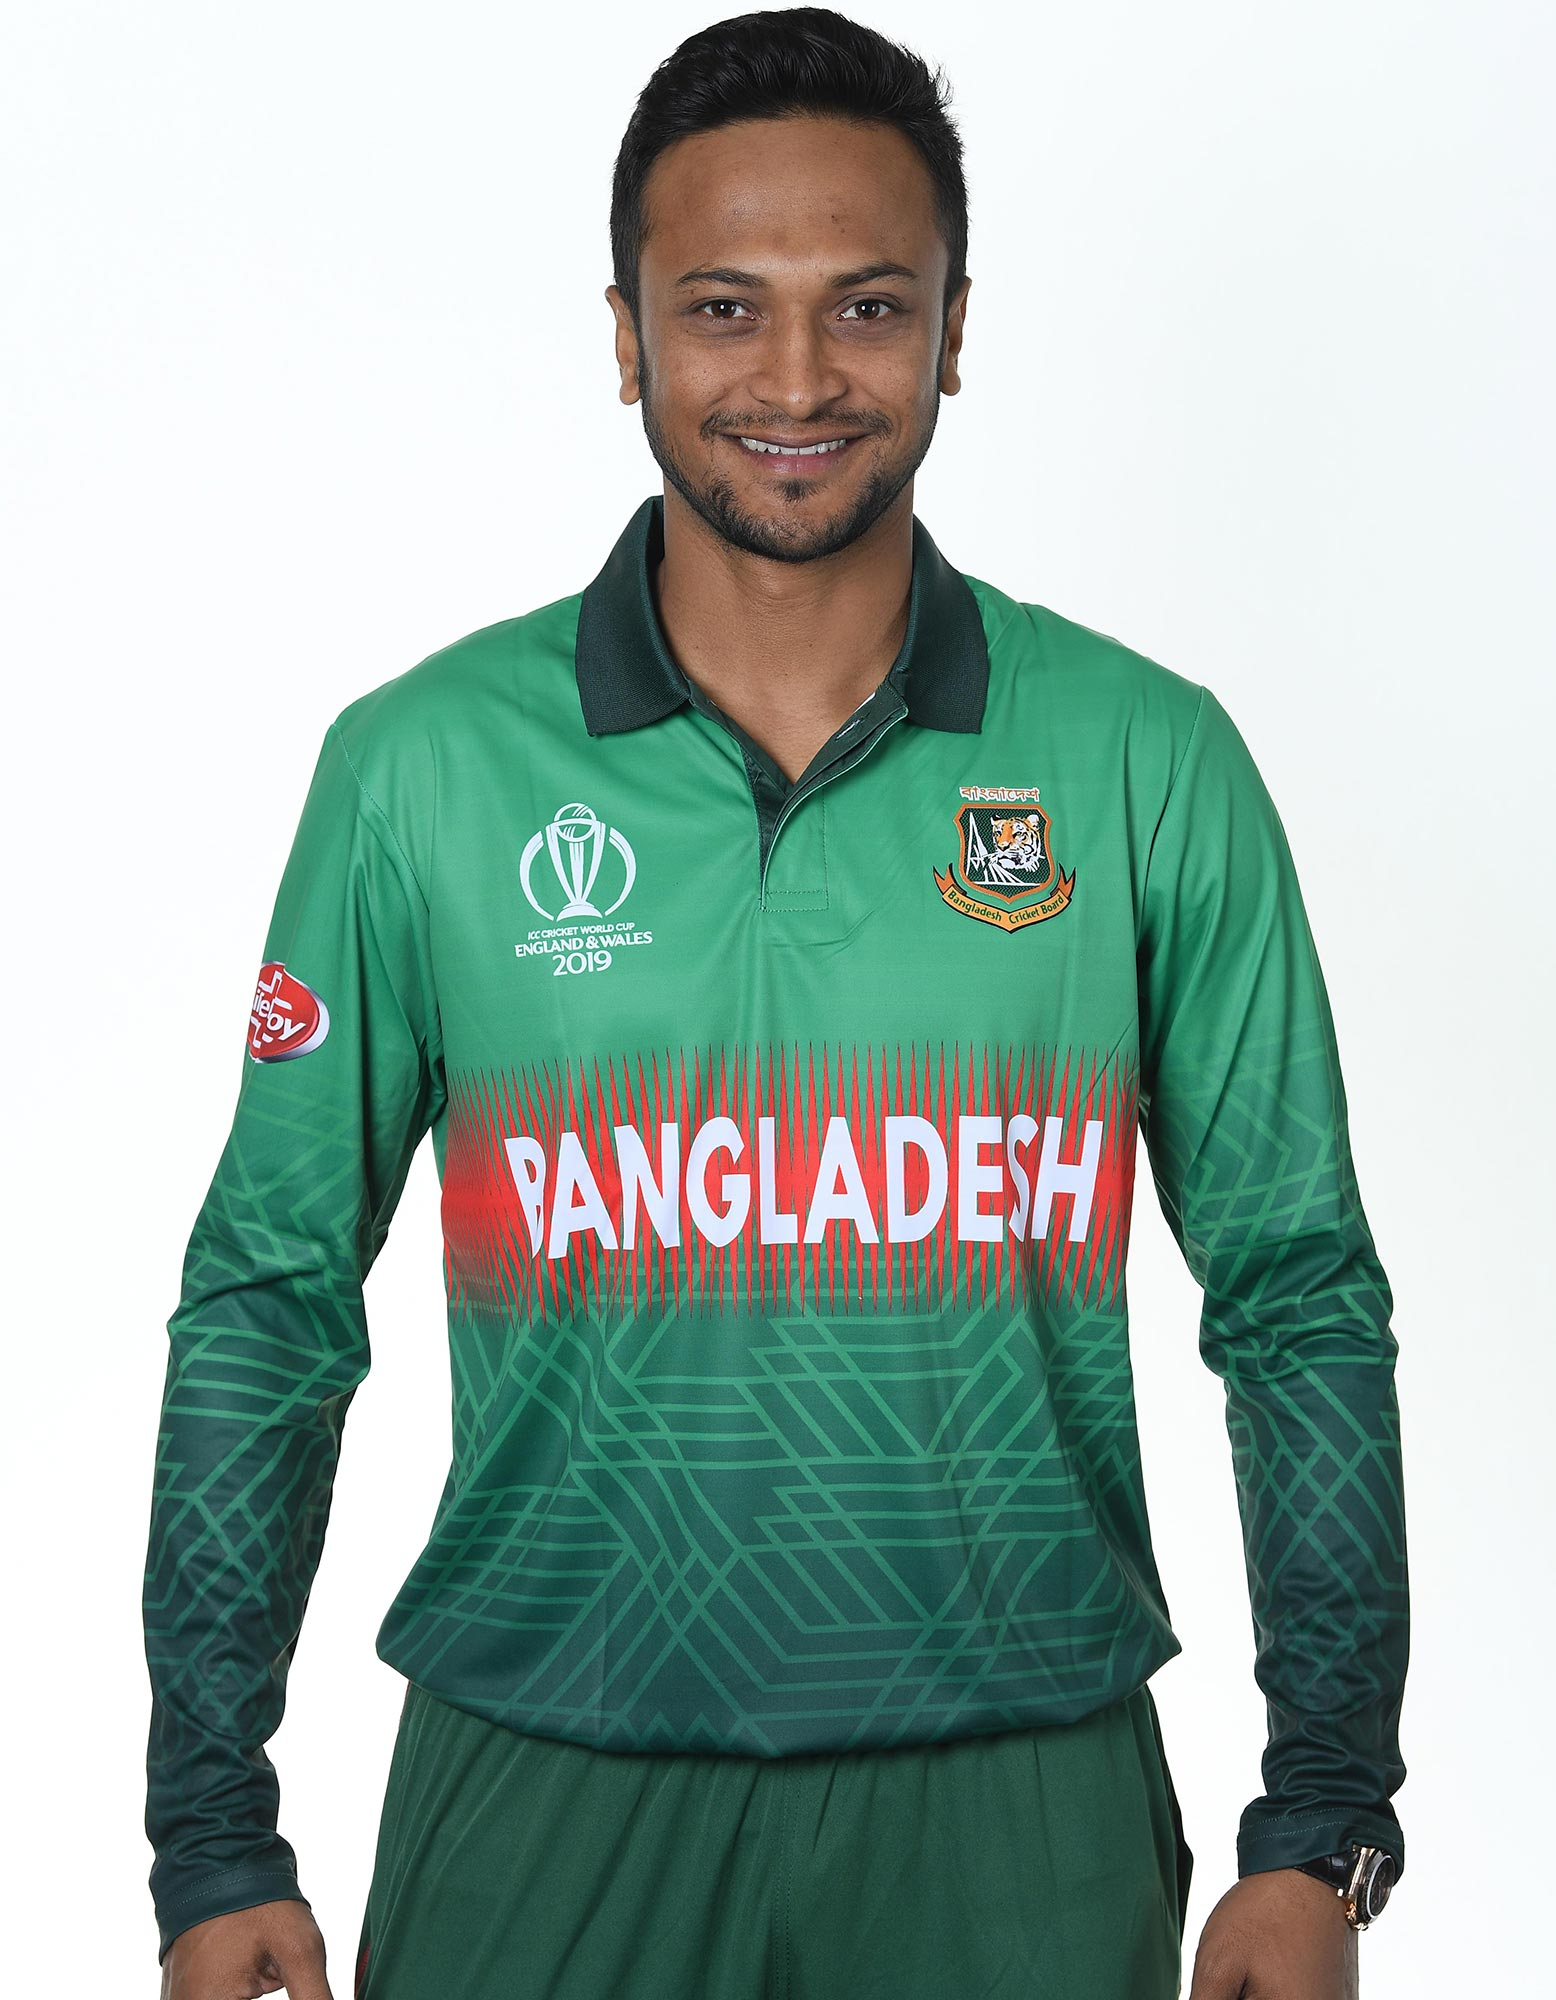 59f3cd541 Bangladesh have paraded three different World Cup strips this month, with  the first iteration being scrapped following criticism that it was too  similar to ...